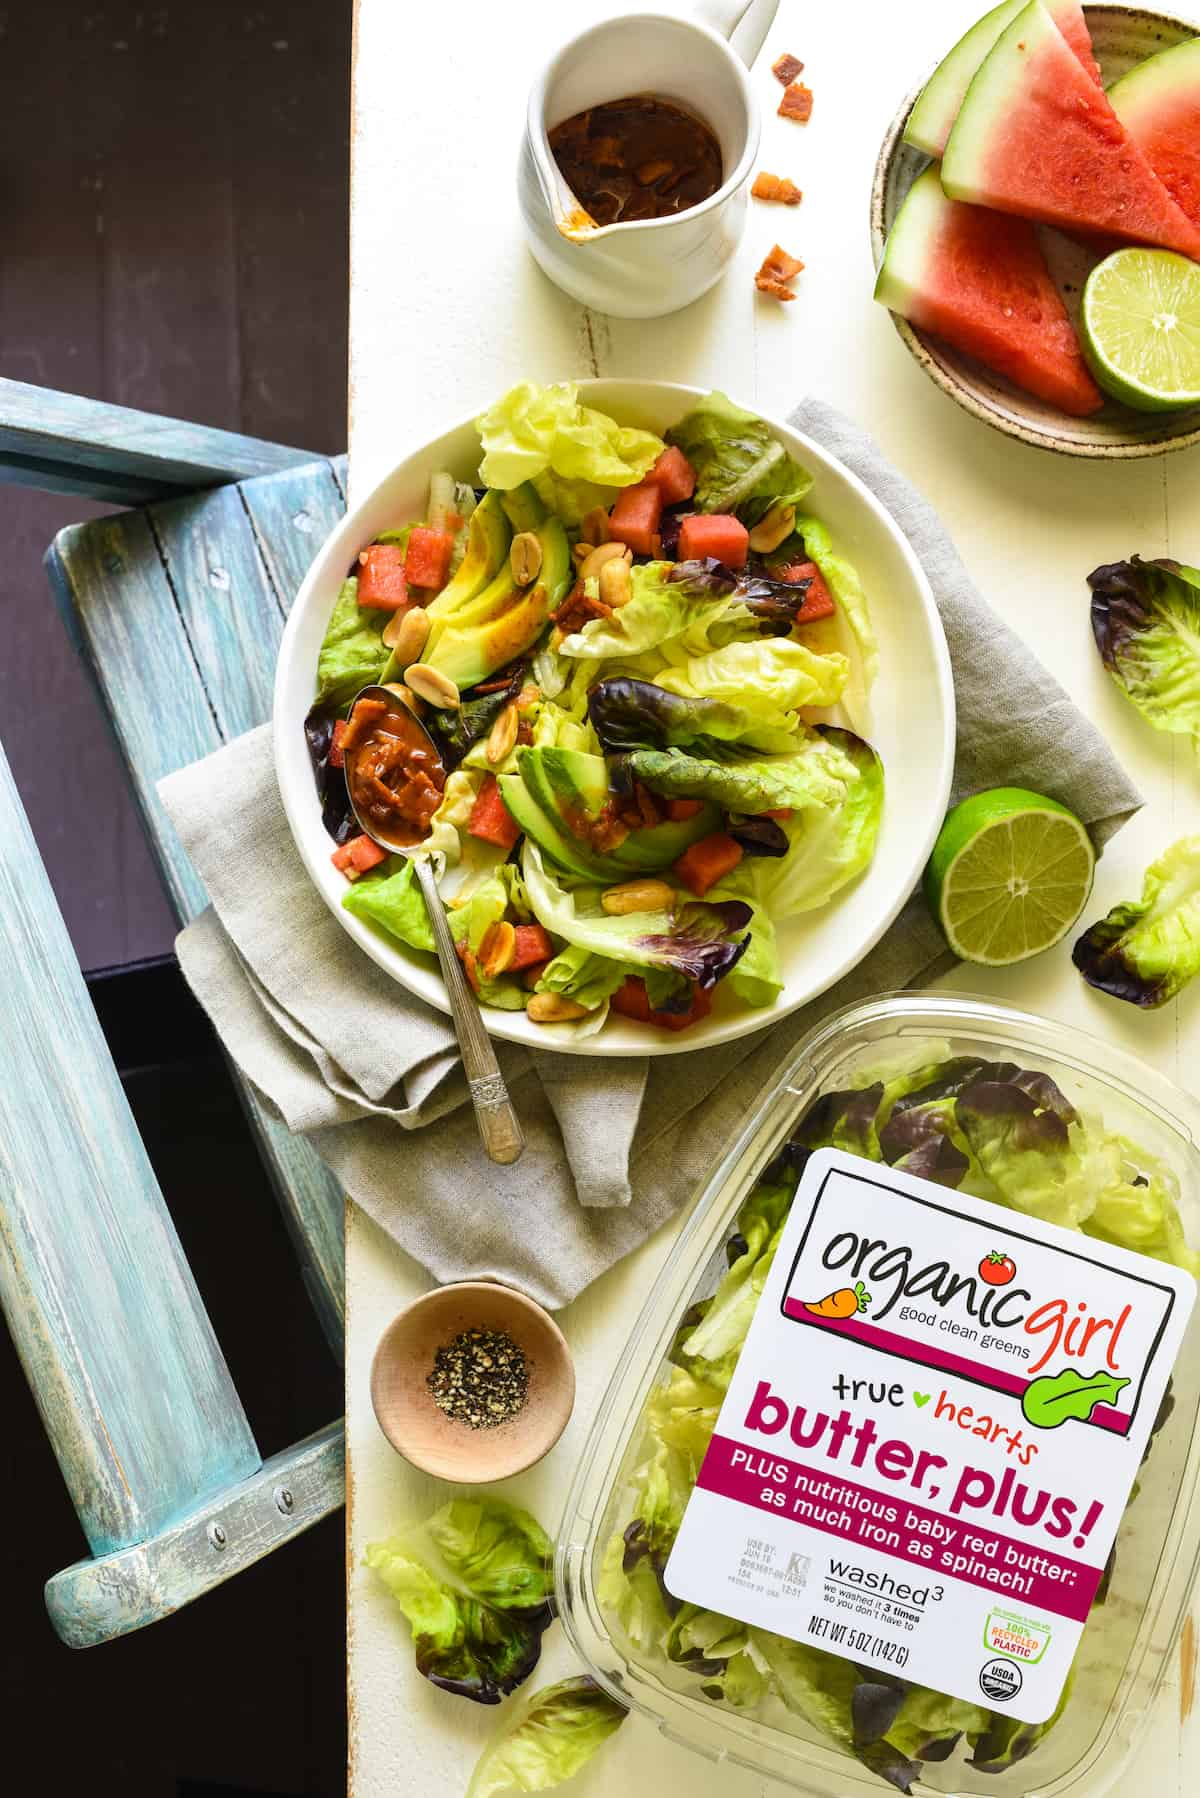 Watermelon and Avocado Salad with Warm Bacon Dressing - An irresistible sweet and savory summer salad! Butter lettuce, watermelon, avocado and peanuts are topped with an easy warm bacon dressing.   foxeslovelemons.com